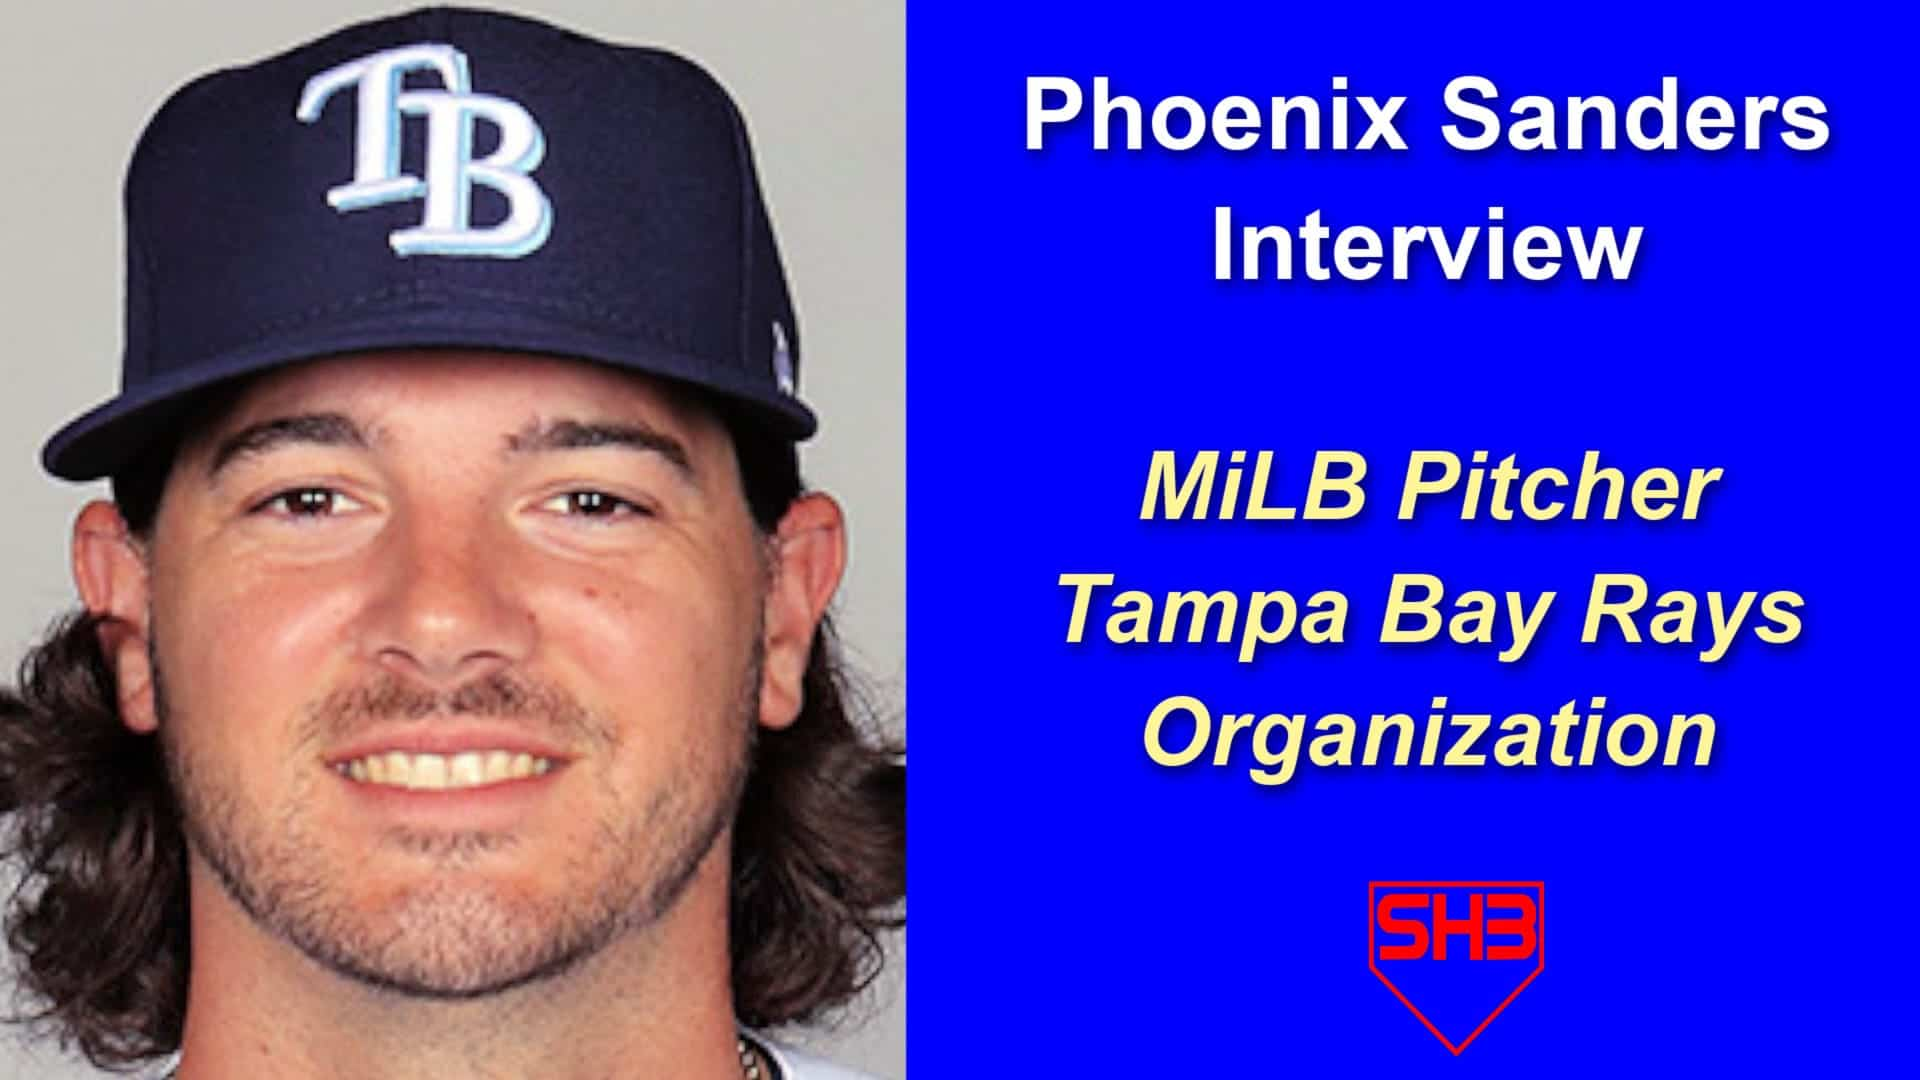 phoenix sanders interview